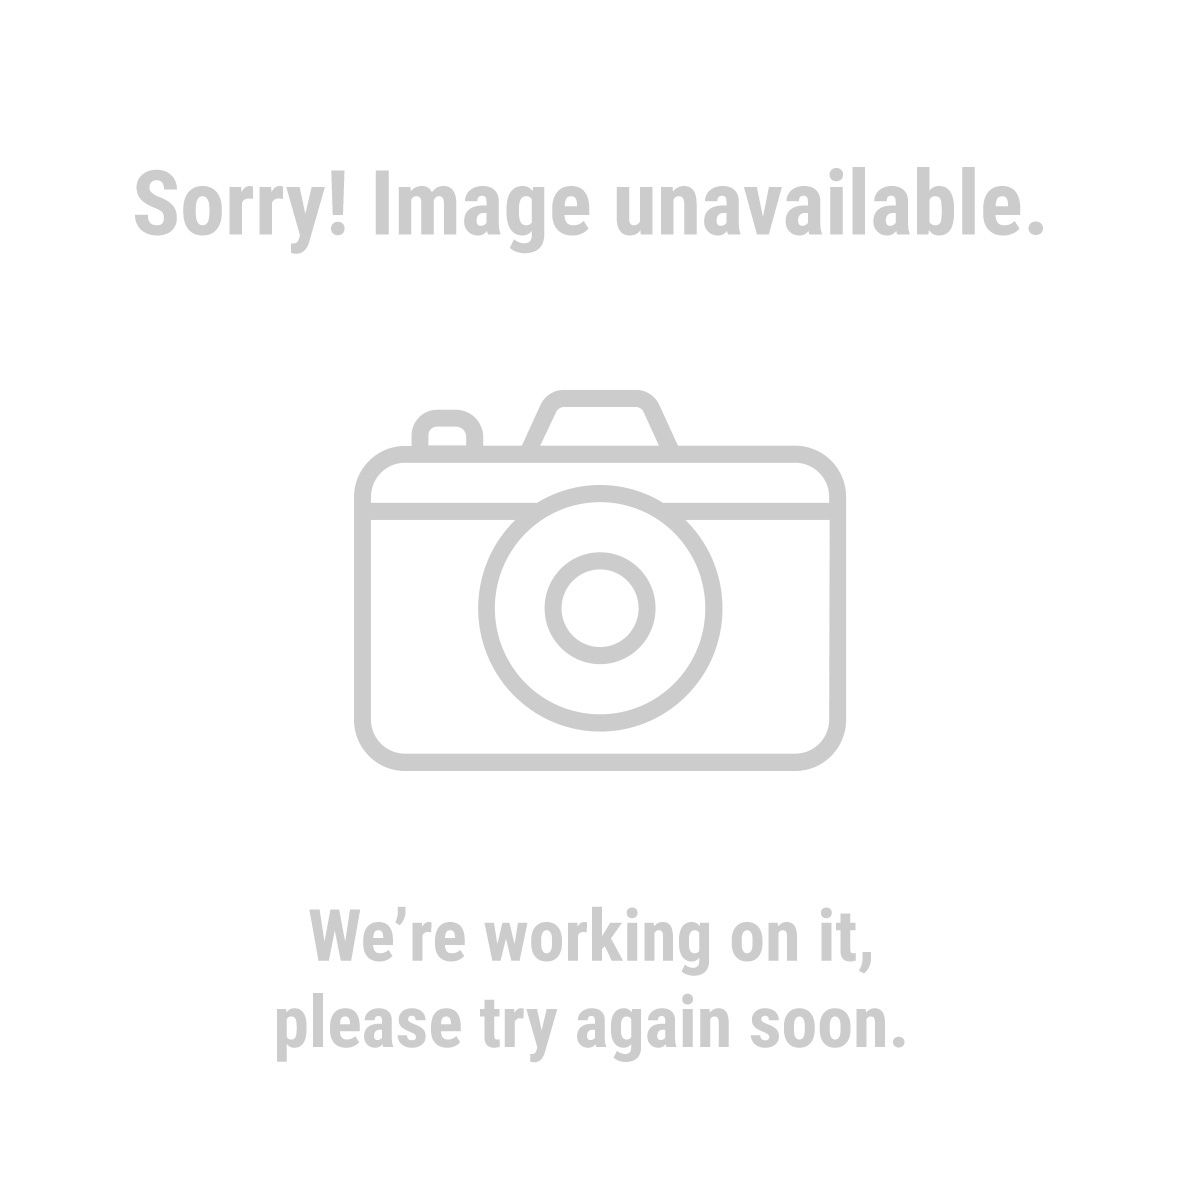 Haul-Master 69869 12 Volt Magnetic LED Towing Light Kit